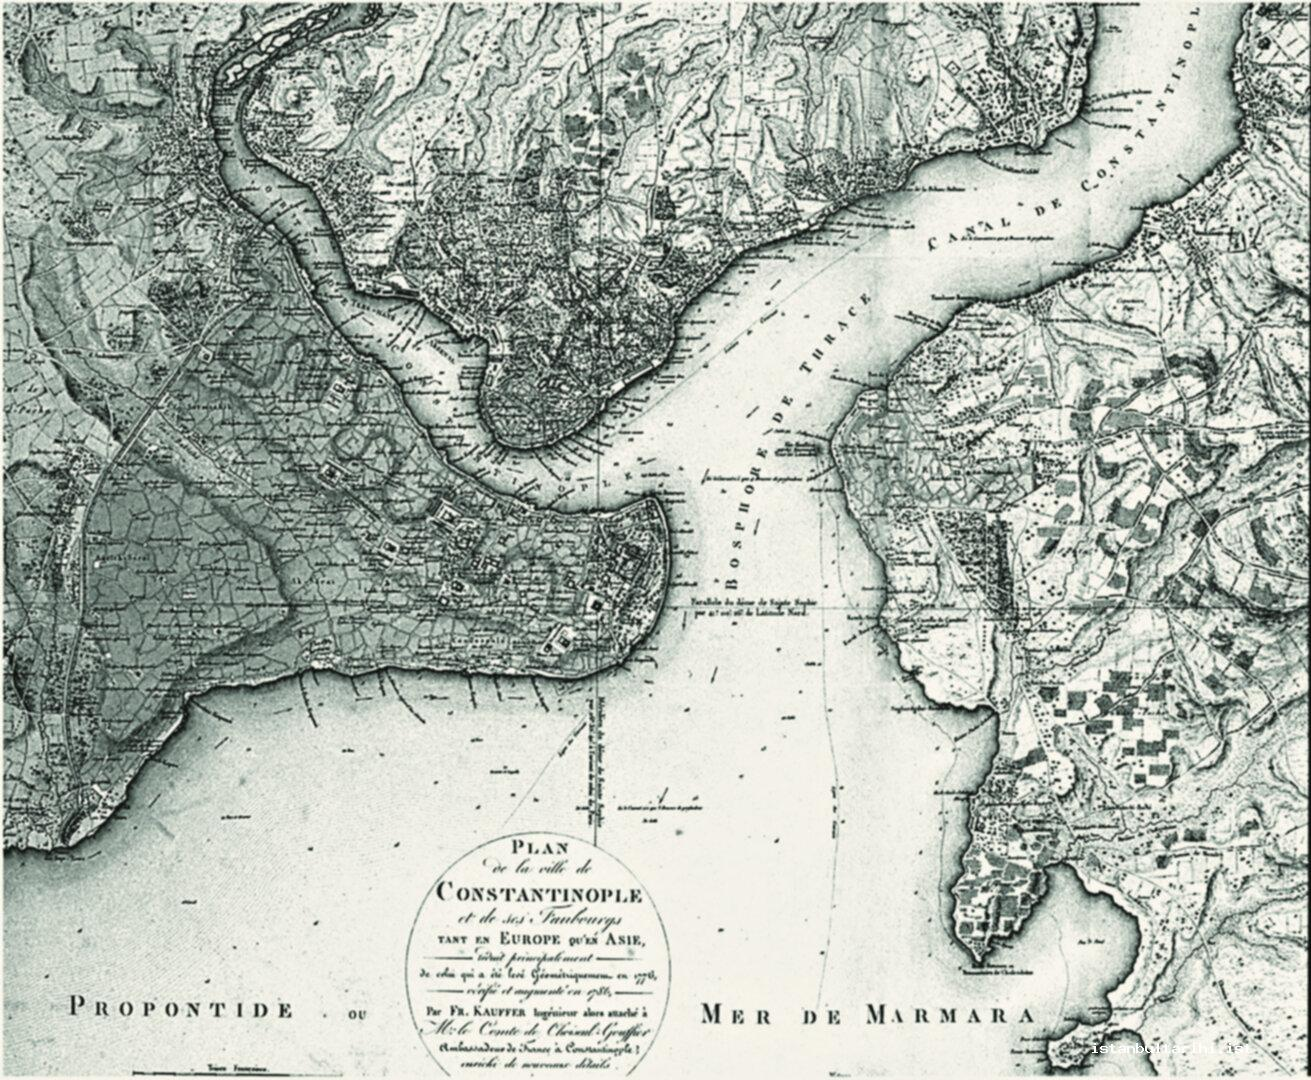 3- Map of Istanbul by Kauffman and Lechevalier (1786).